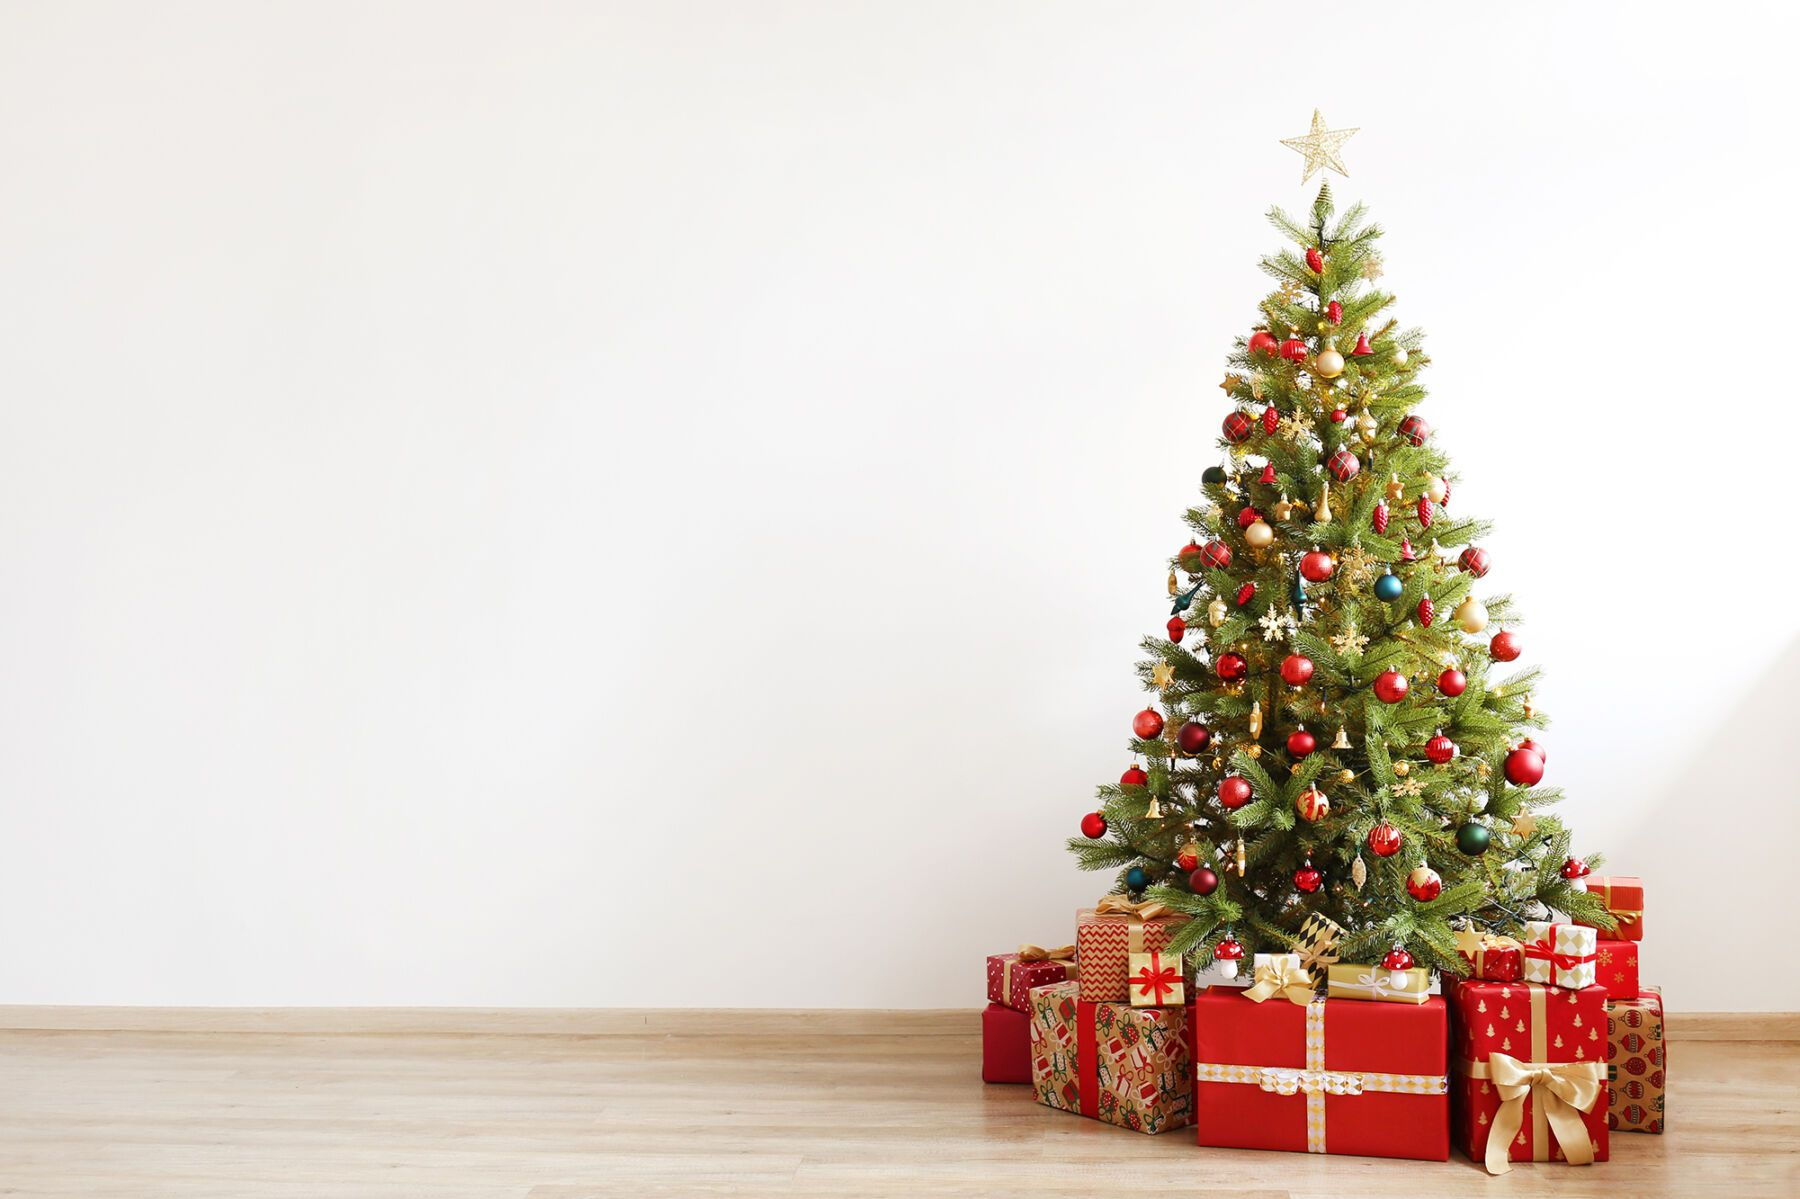 Decorated Christmas Trees With Presents